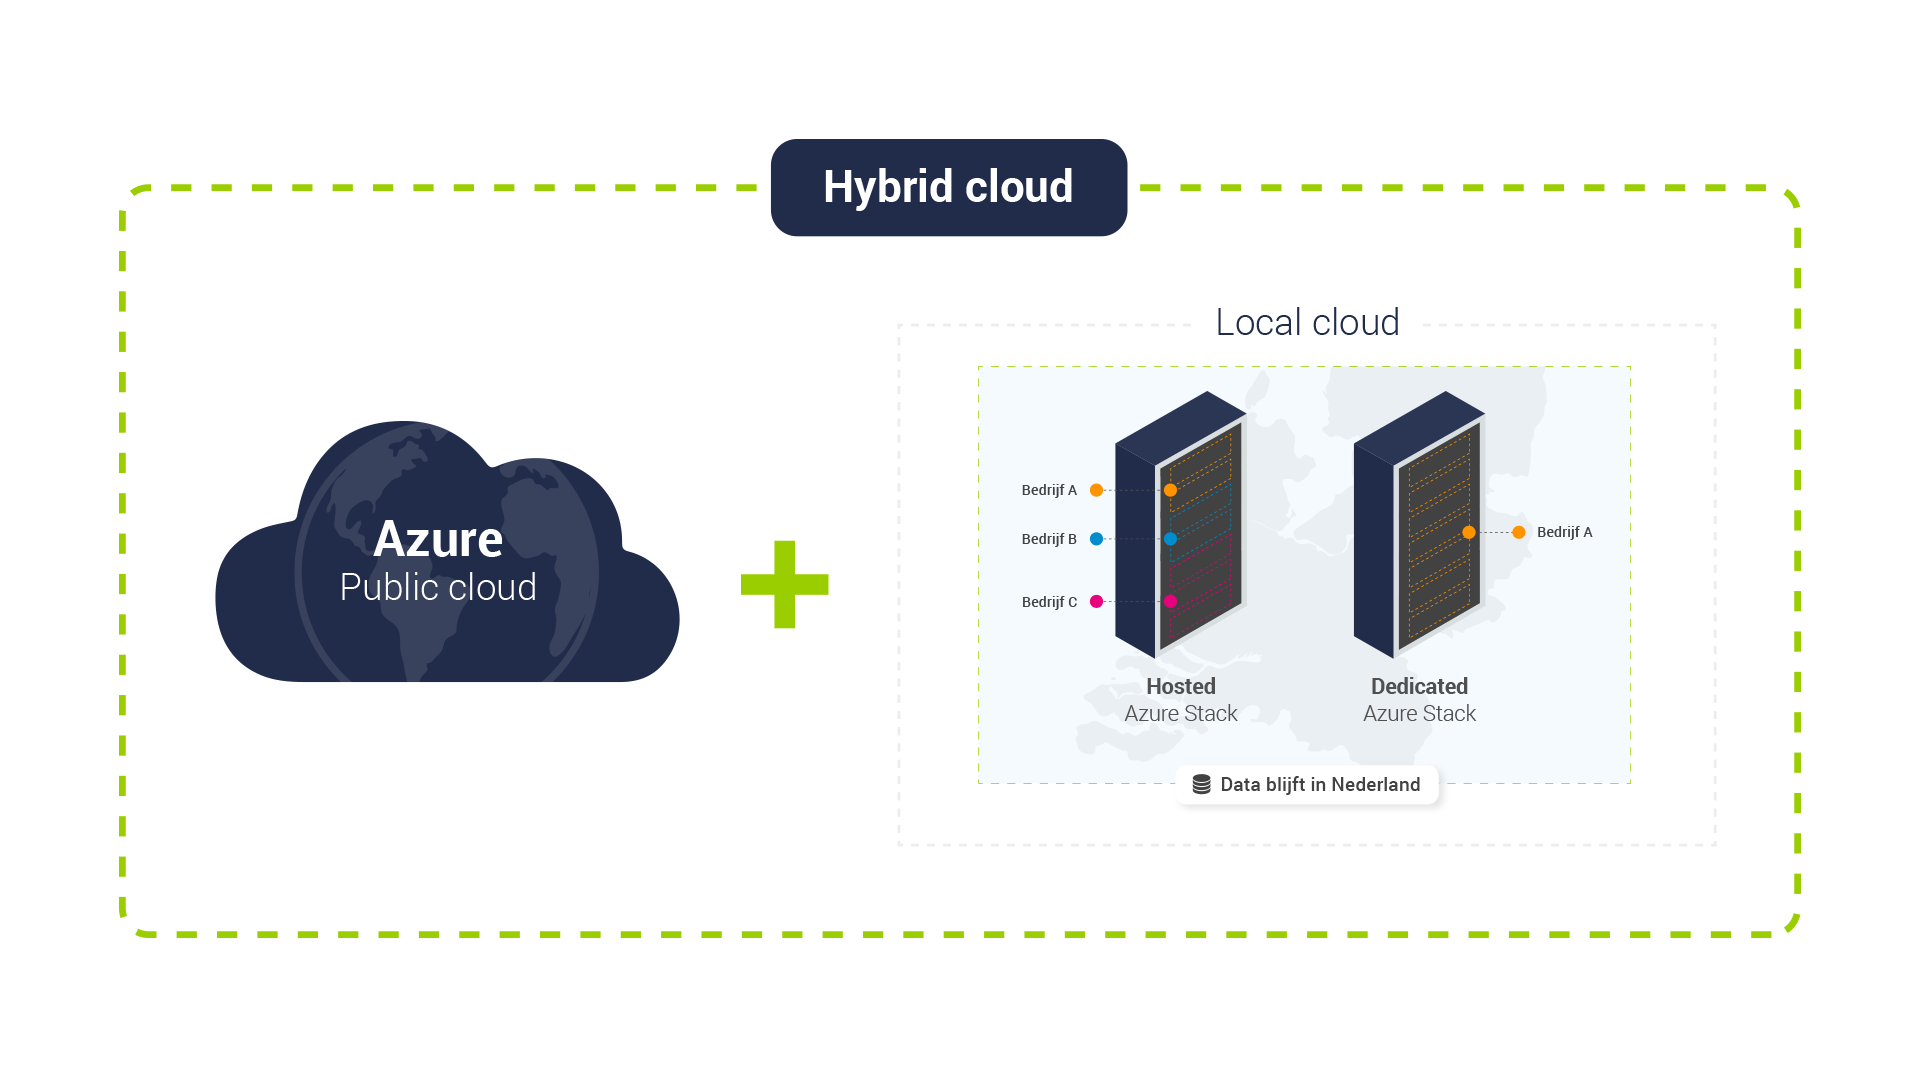 Hybric cloud is public cloud en local cloud data blijft in nederland